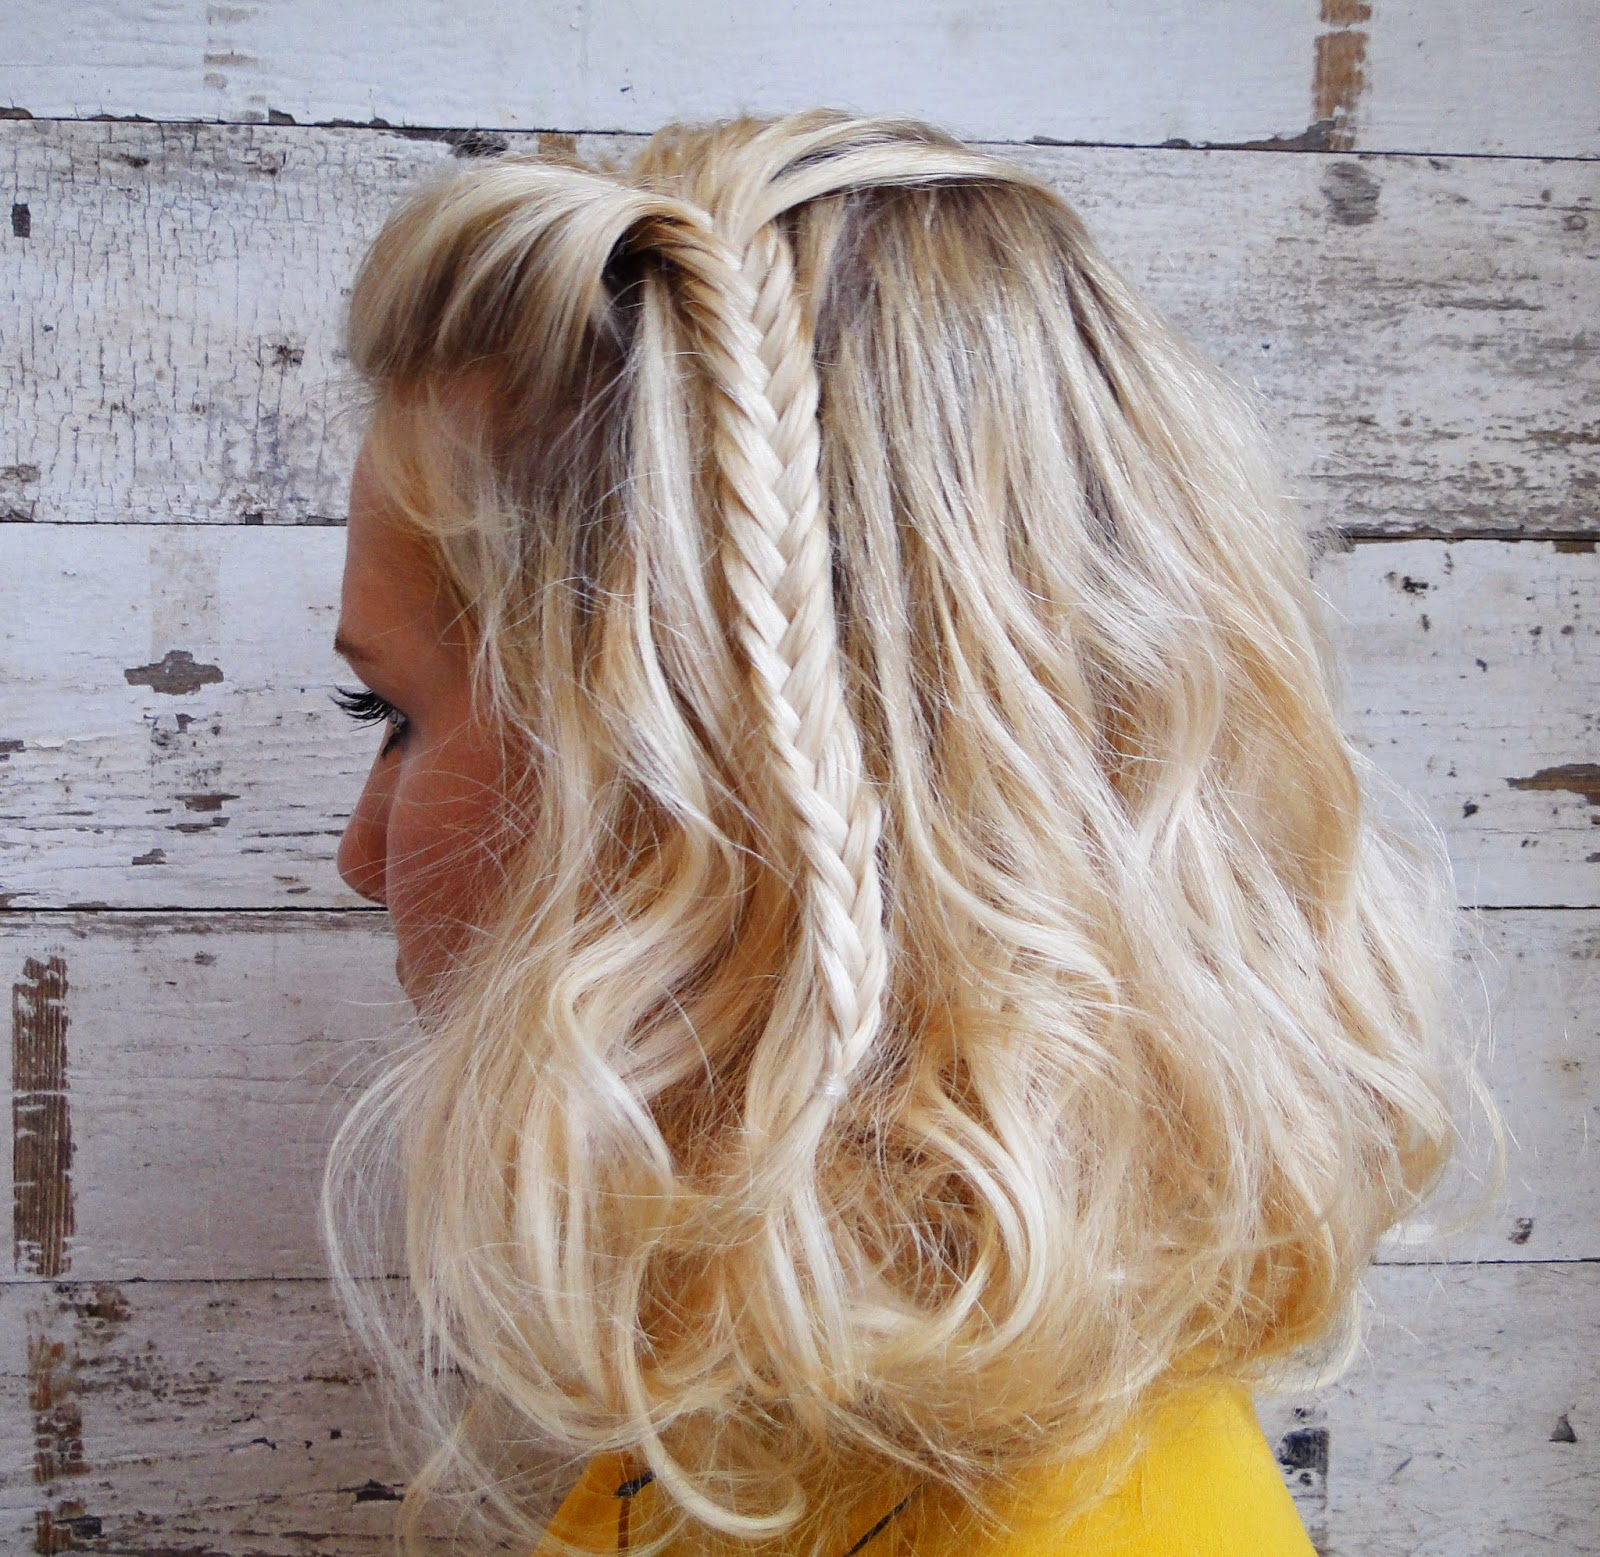 Beauty Girl Musings: Hair Therapy {how-to}: Easy Pool-to